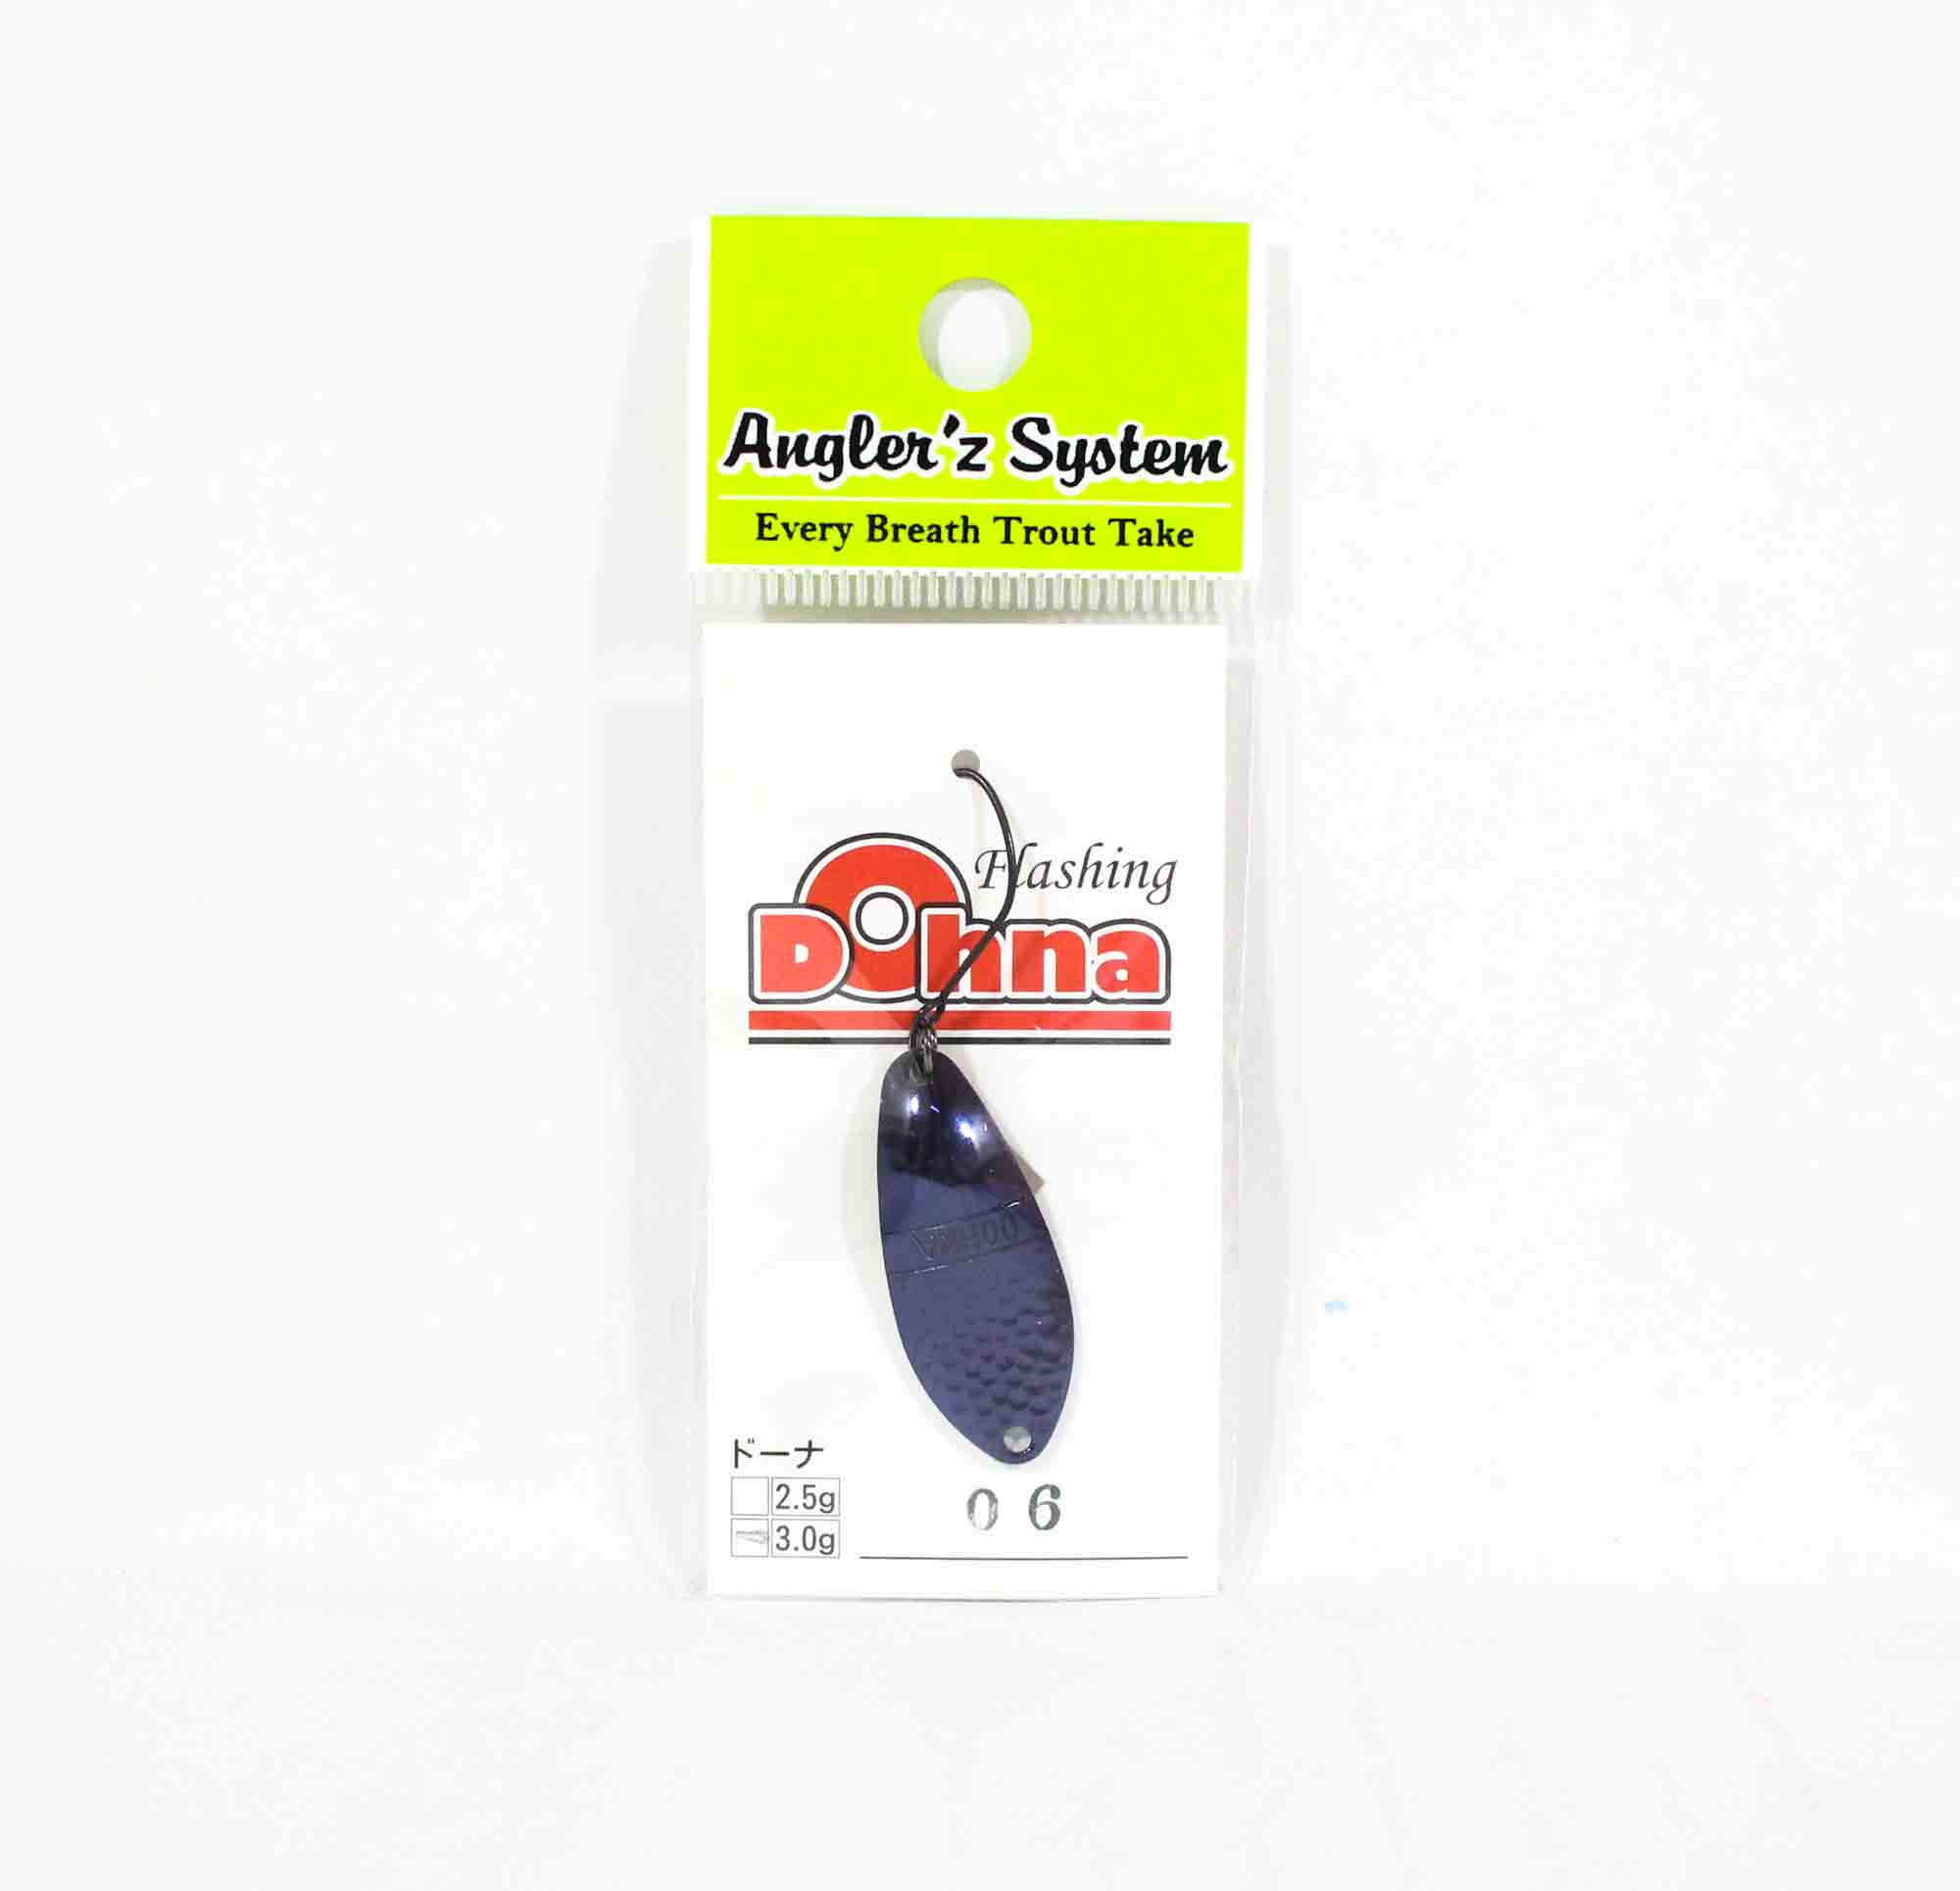 Anglers System Antem Dohna 3.0 grams Spoon Sinking Lure 06 (3469)